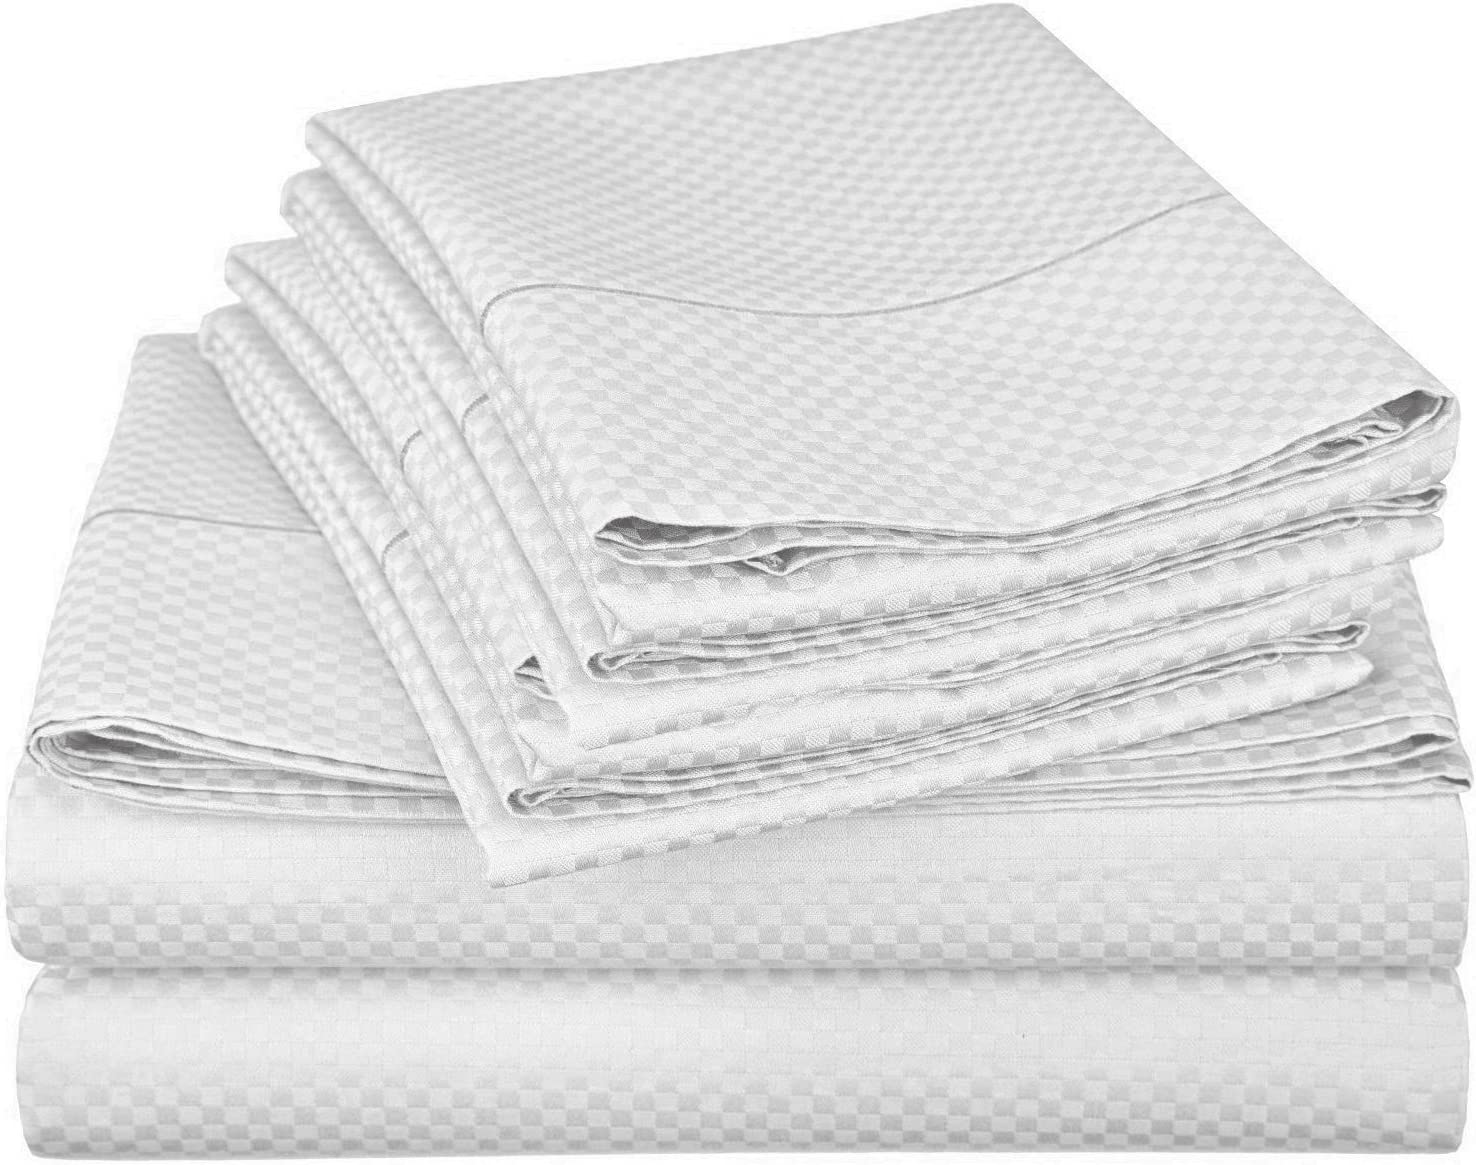 Lux Decor Collection Bed Sheet Set - Brushed Microfiber 1800 Bedding - Wrinkle, Stain and Fade Resistant - Hypoallergenic - 4 Piece (Queen, Checkered White)